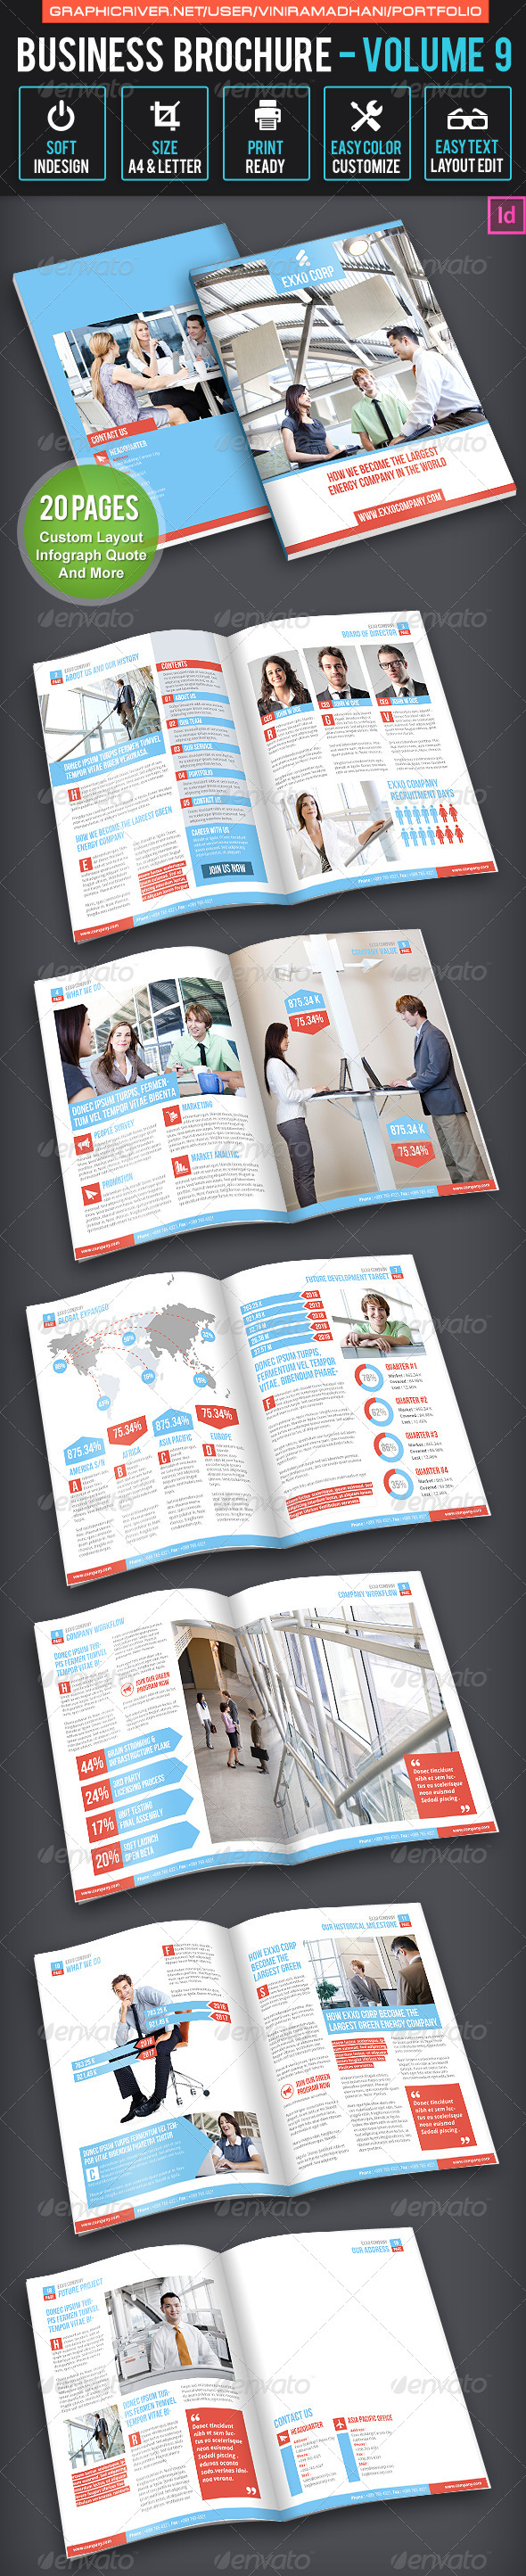 GraphicRiver Business Brochure Volume 9 6648324